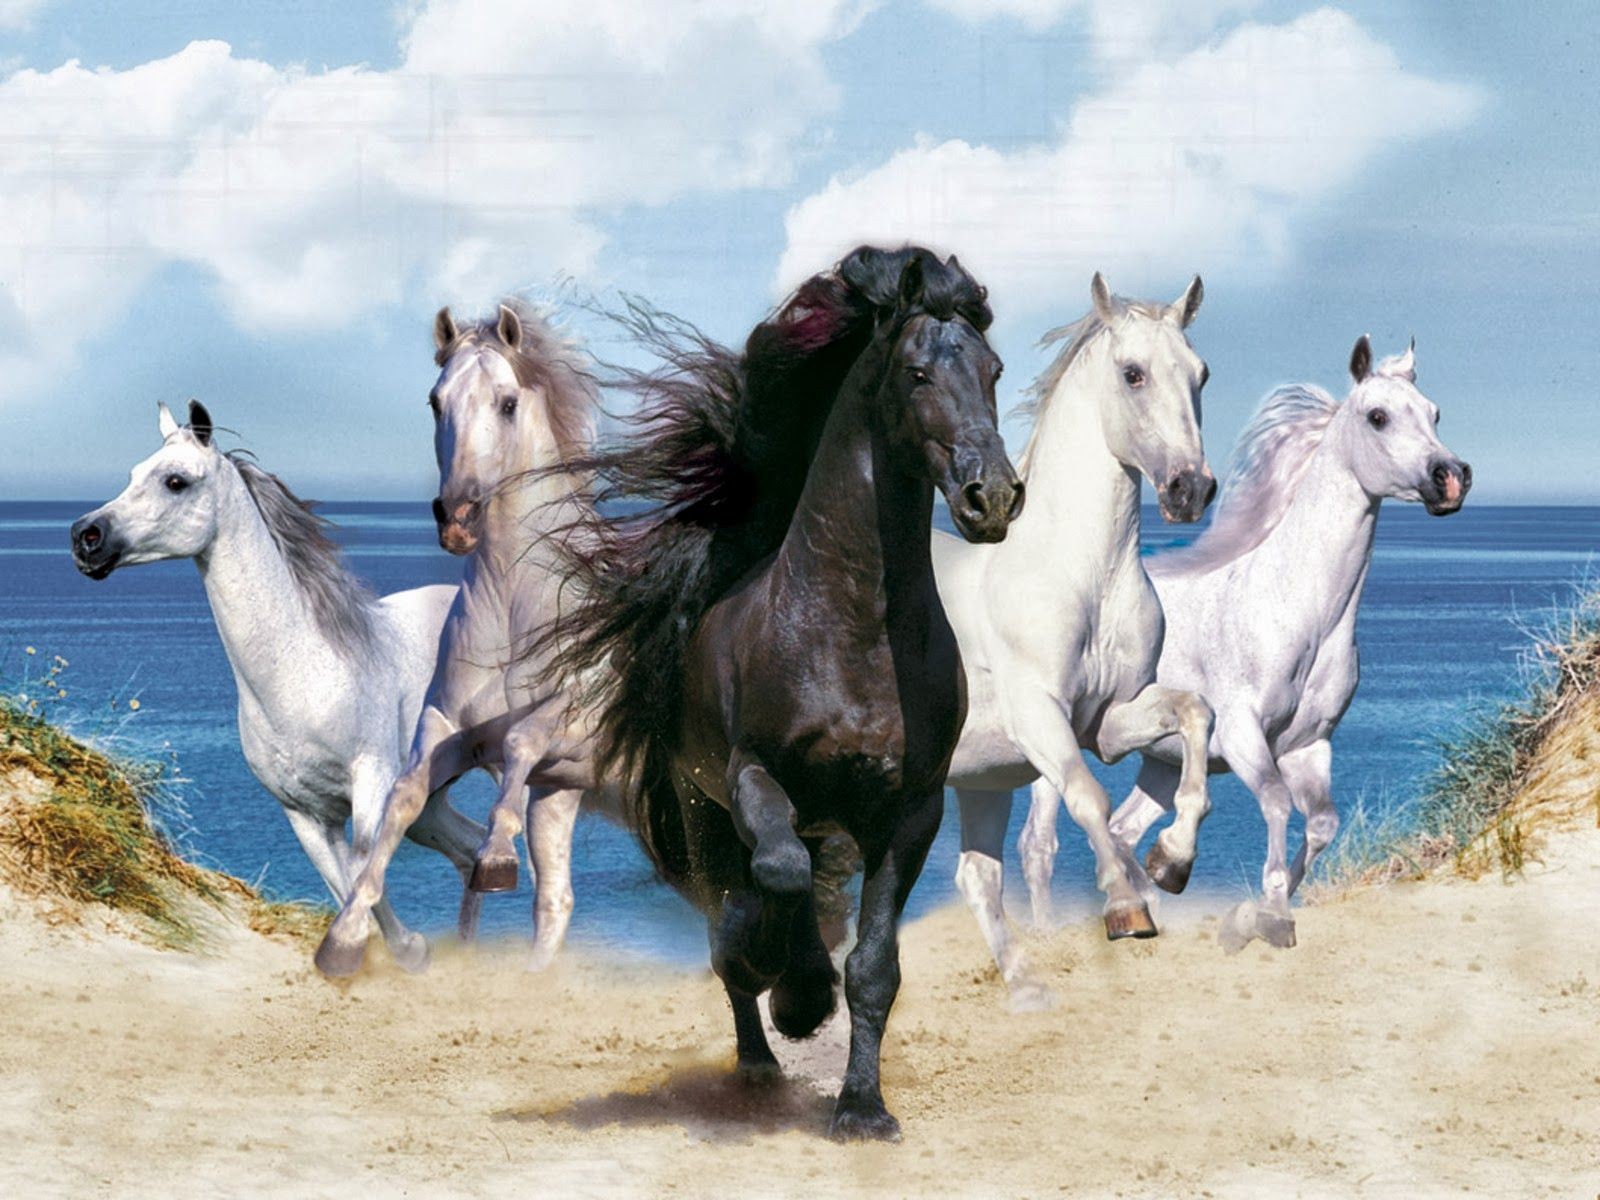 Horses Hd Wallpapers Free Hd Wallpapers Horse Wallpaper Beautiful Horses Horse Background